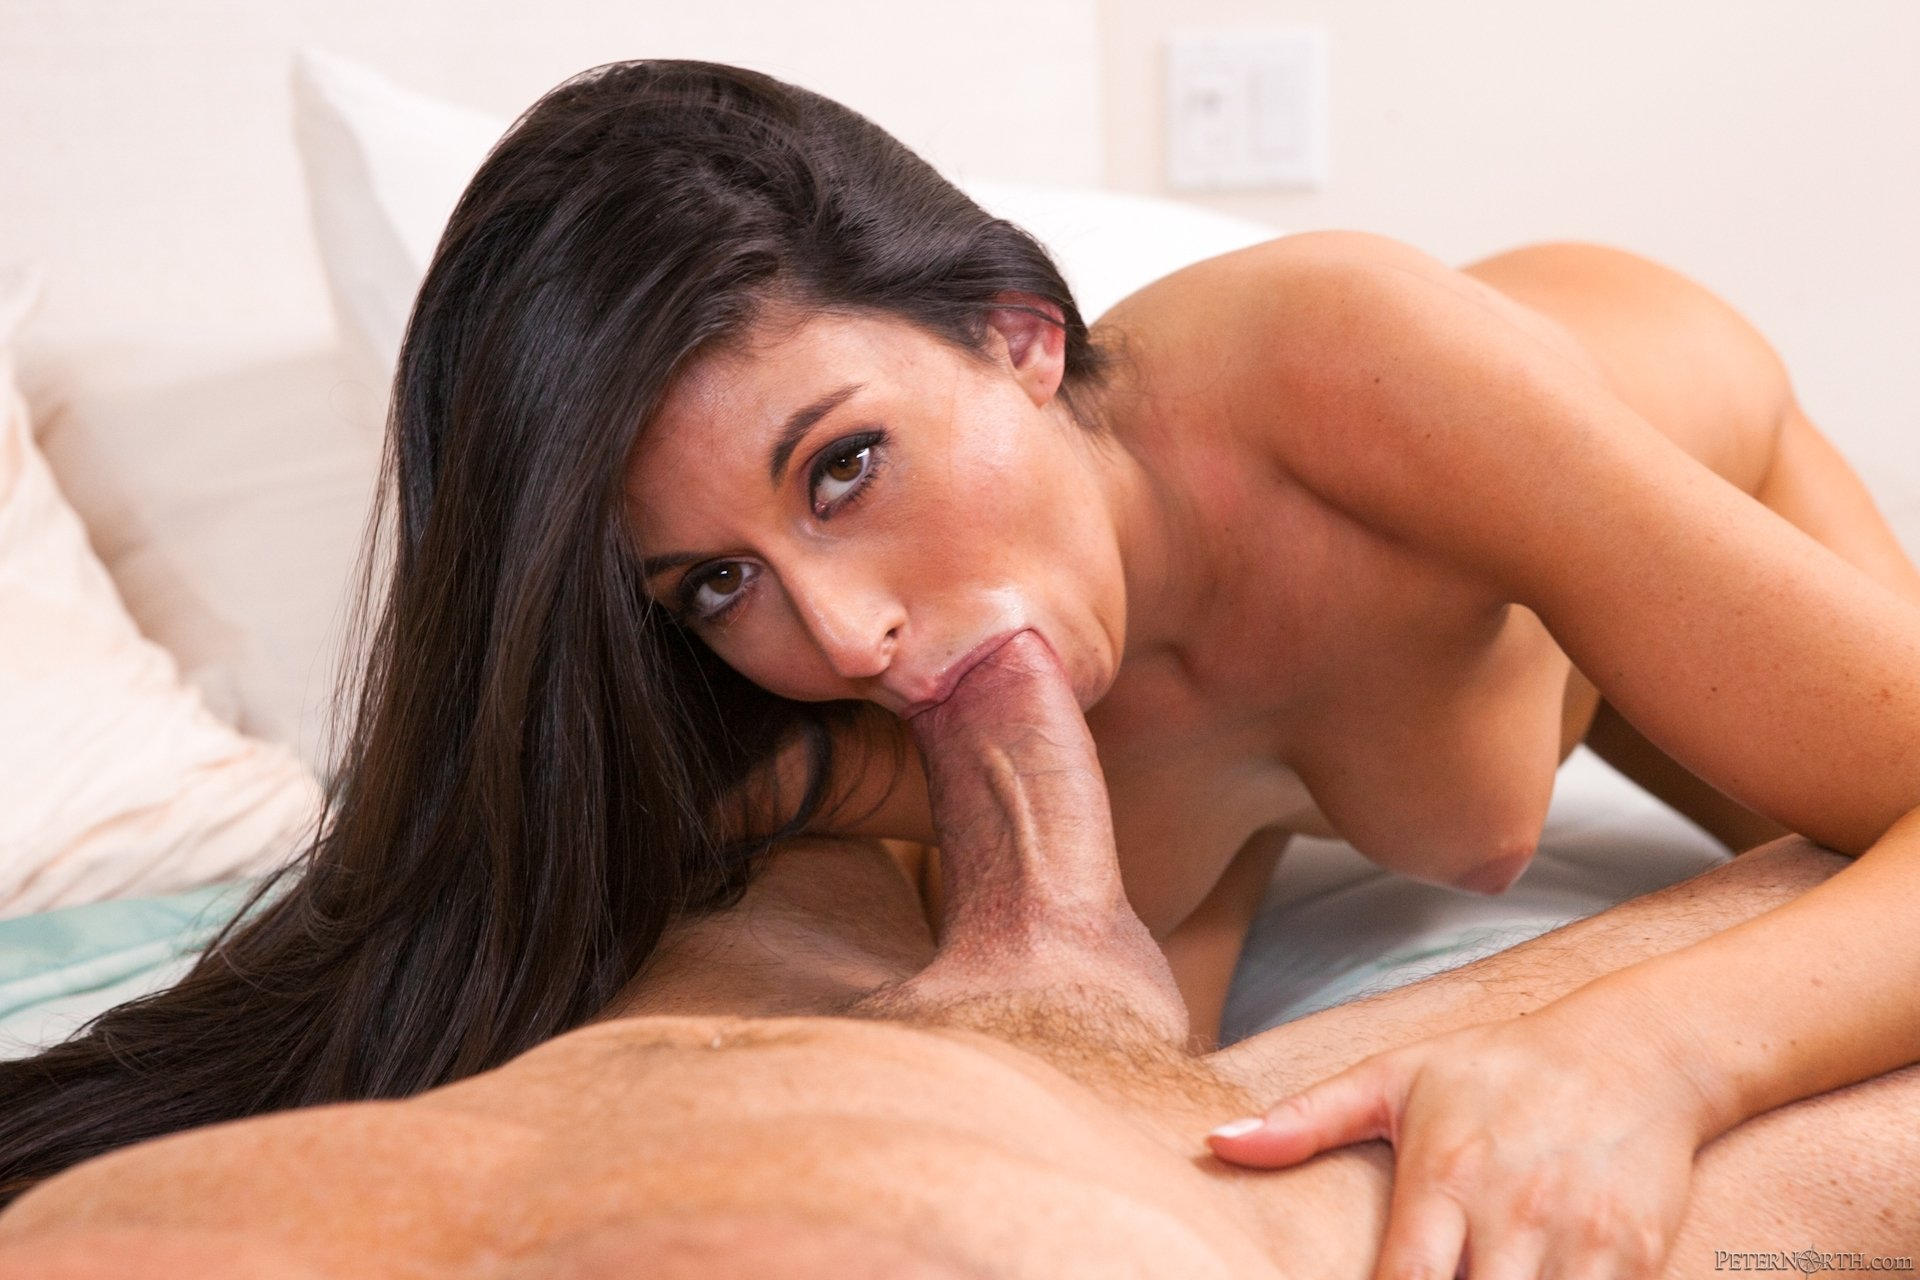 Deepthroat pro adrianna nicole best blowjob ever